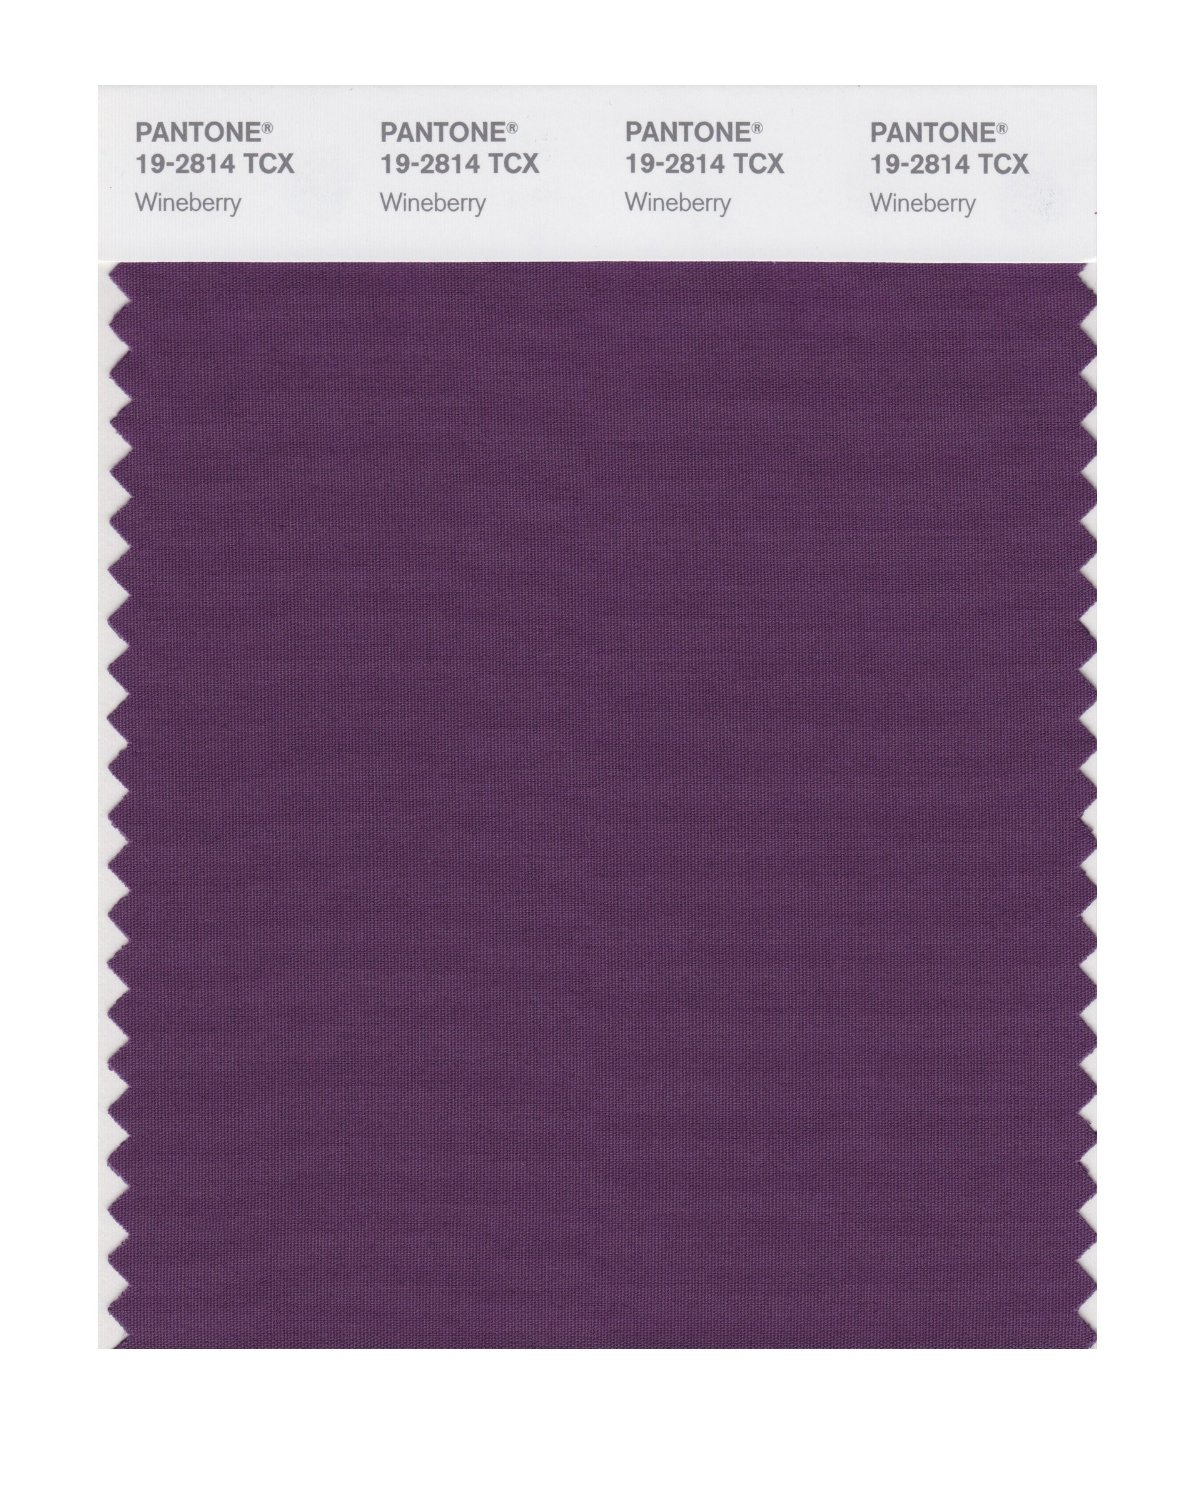 Pantone Smart Swatch 19-2814 Wineberry